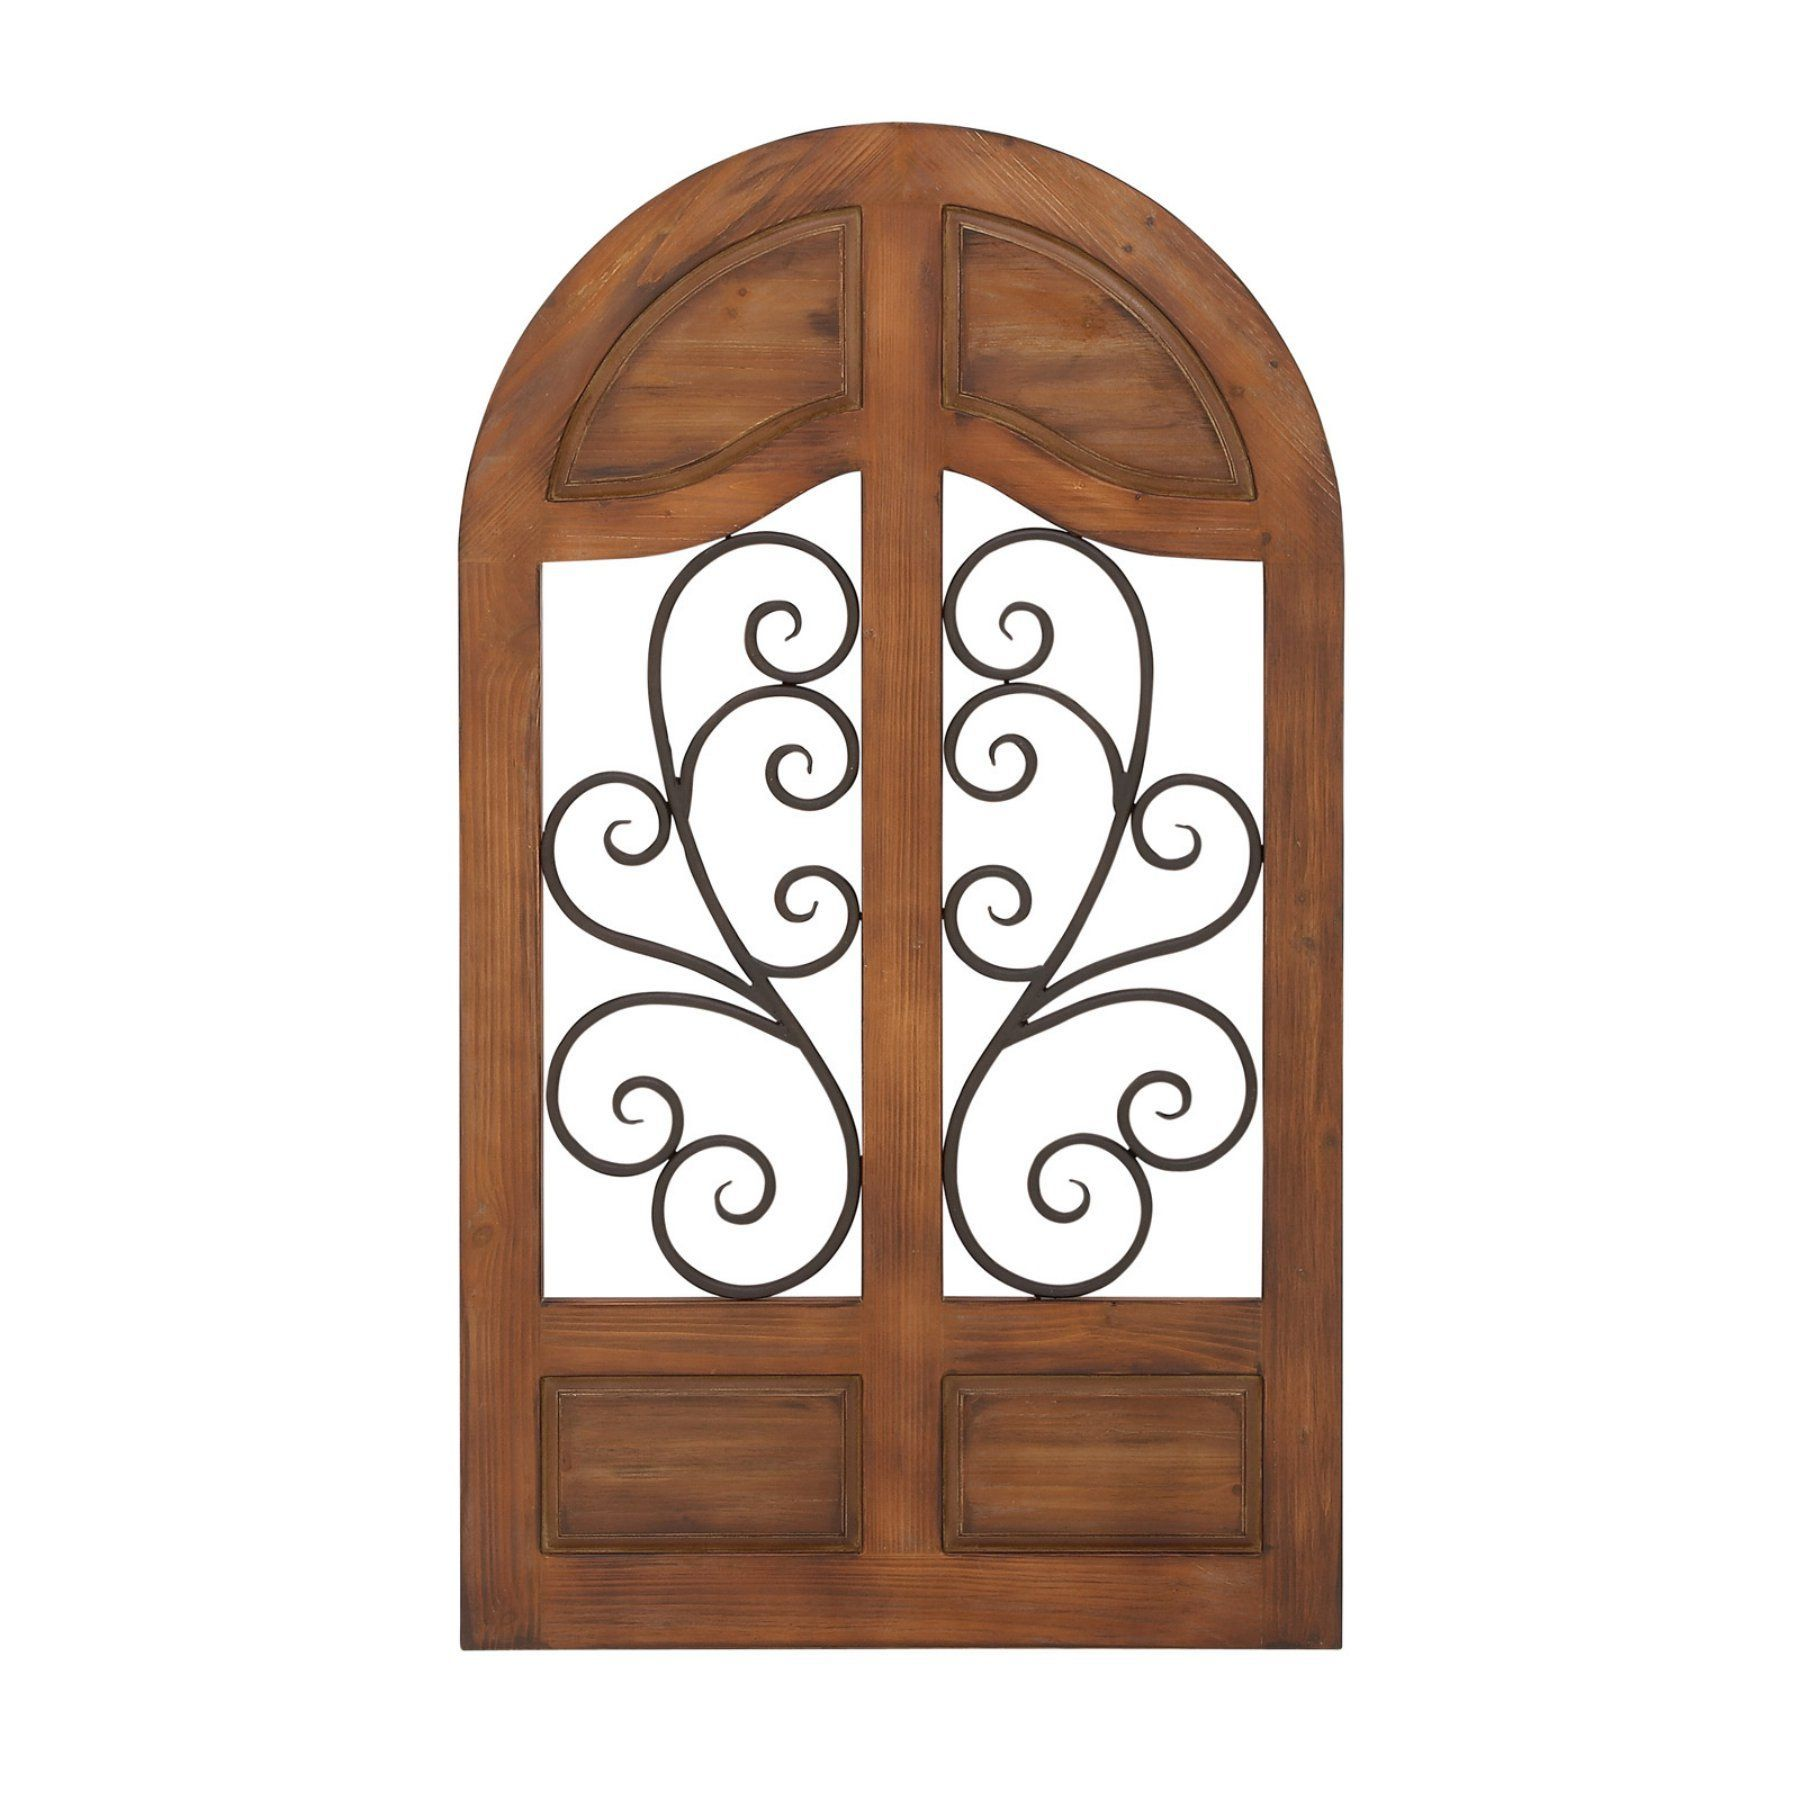 Wood And Metal Wall Plaque Decmode Metal Scrollwork And Arched Wood Wall Plaque  34W X 59H